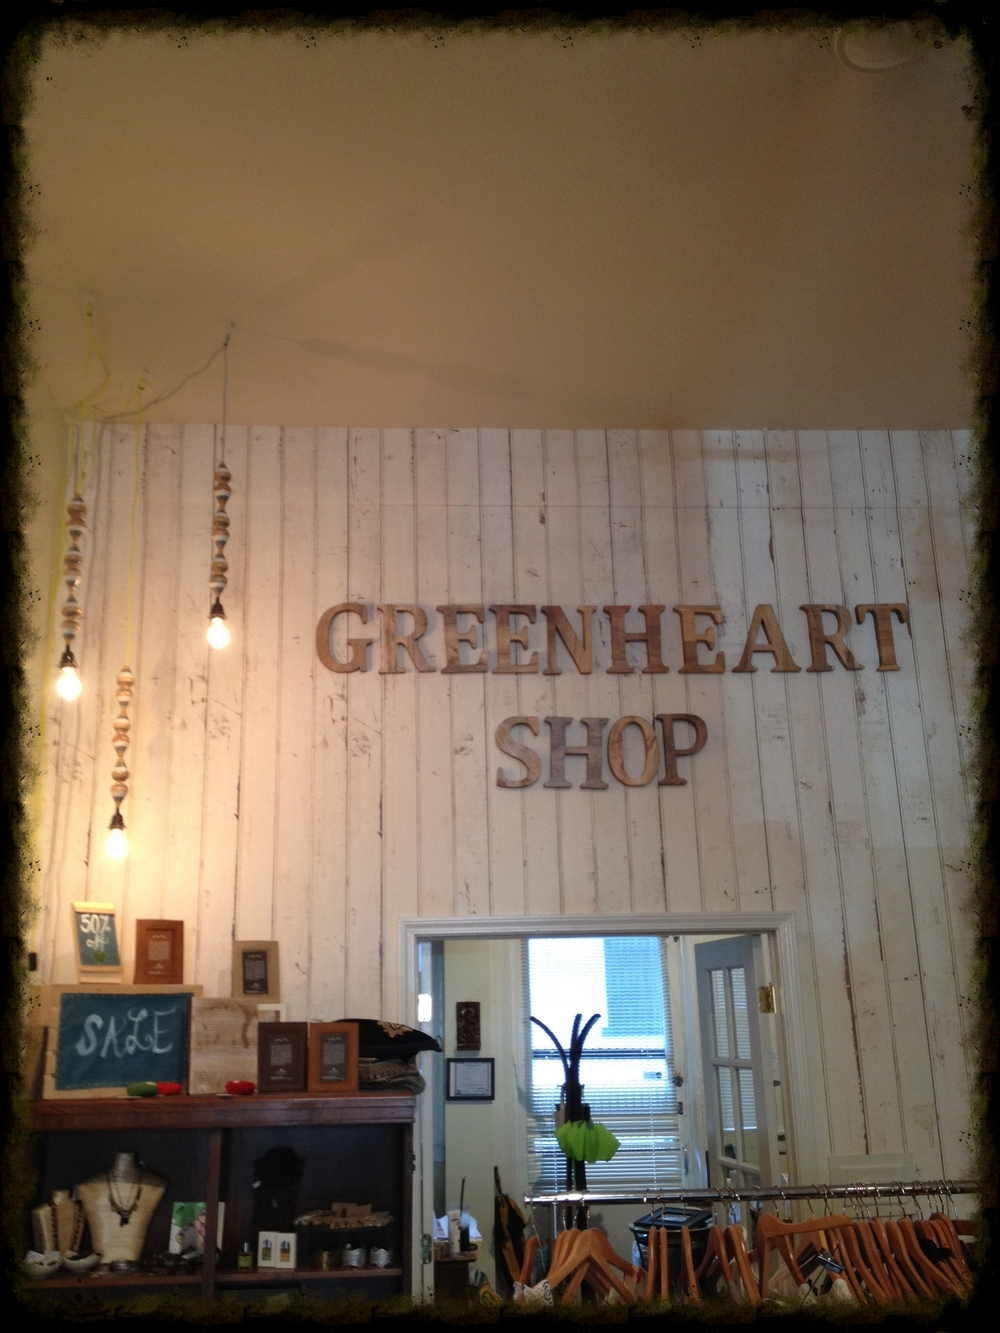 Hello, Greenheart Shop!